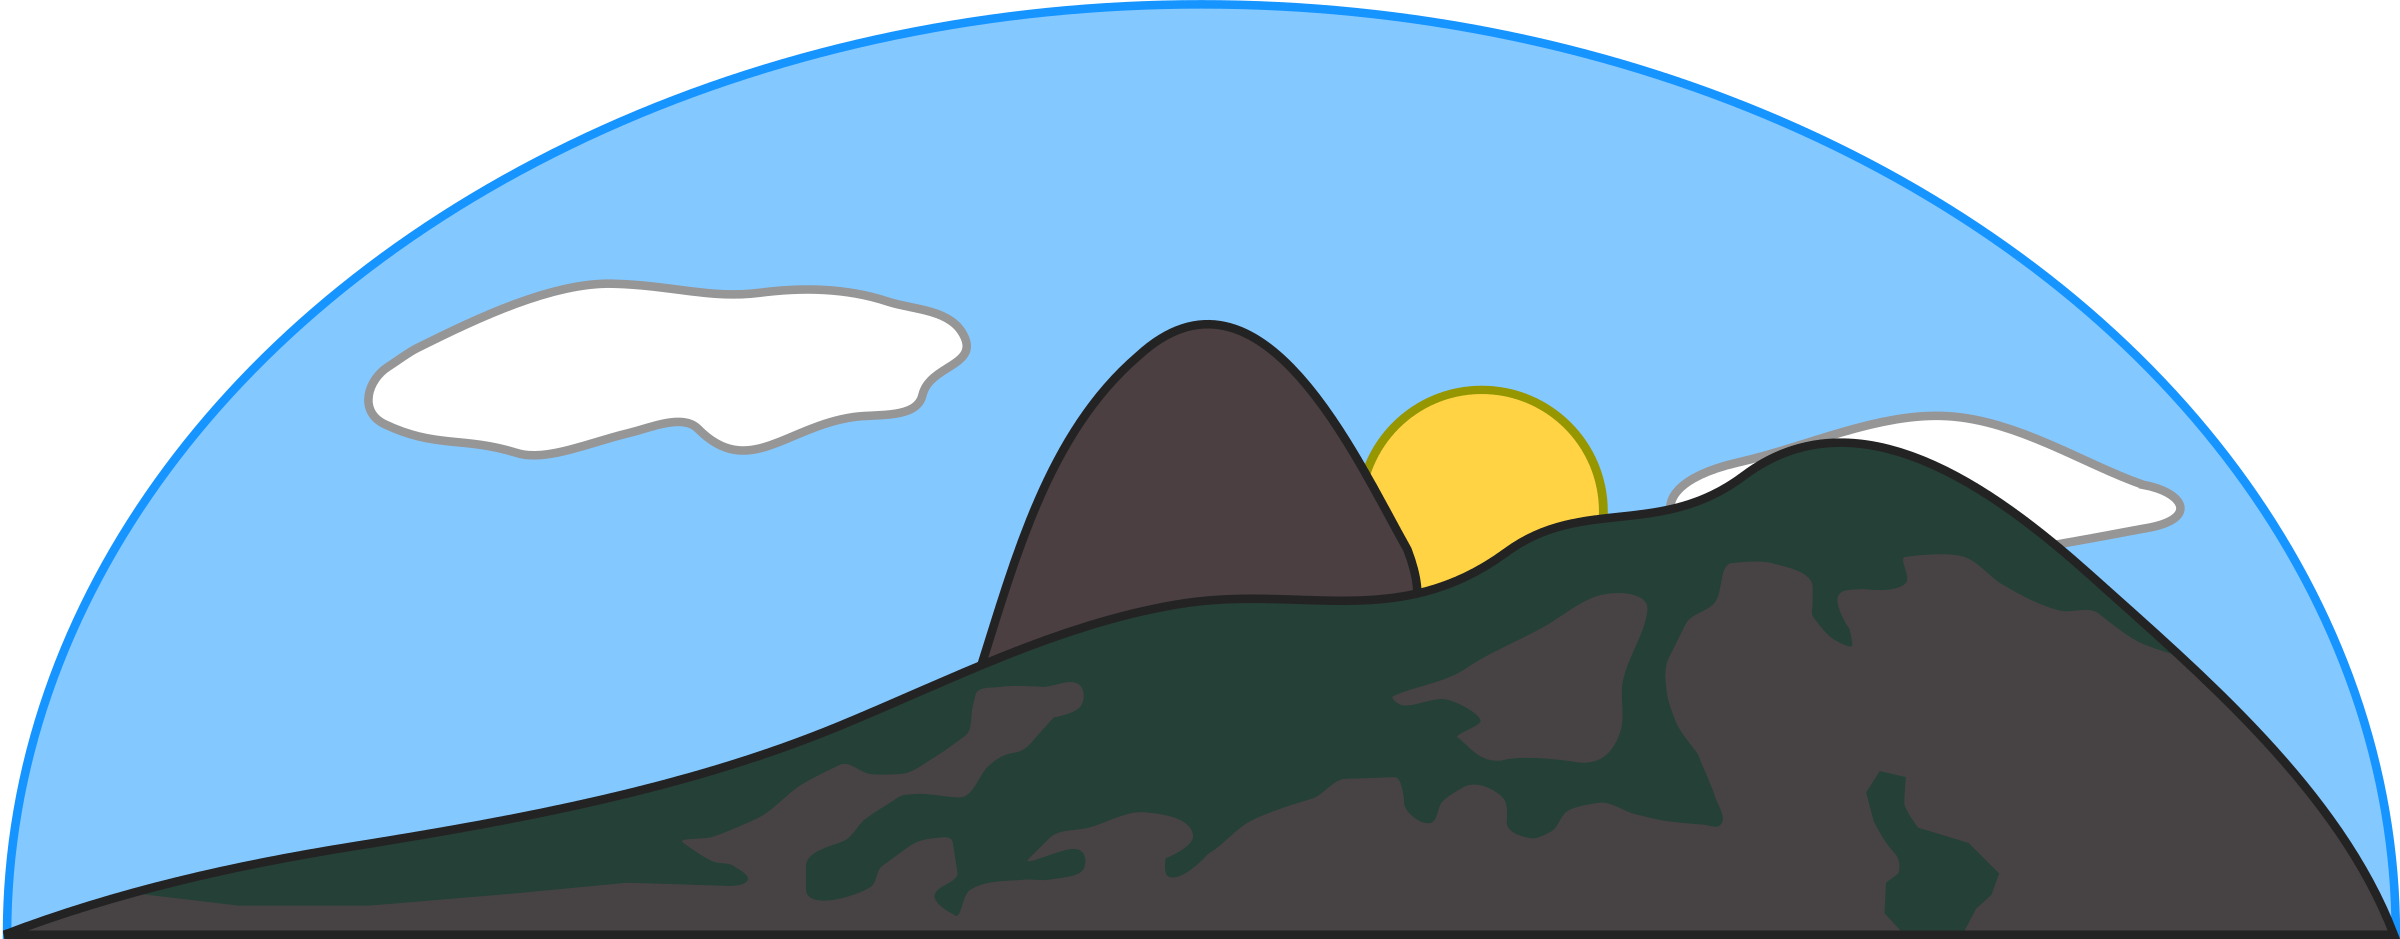 Clipart mountain cute. Big hill cliparts zone